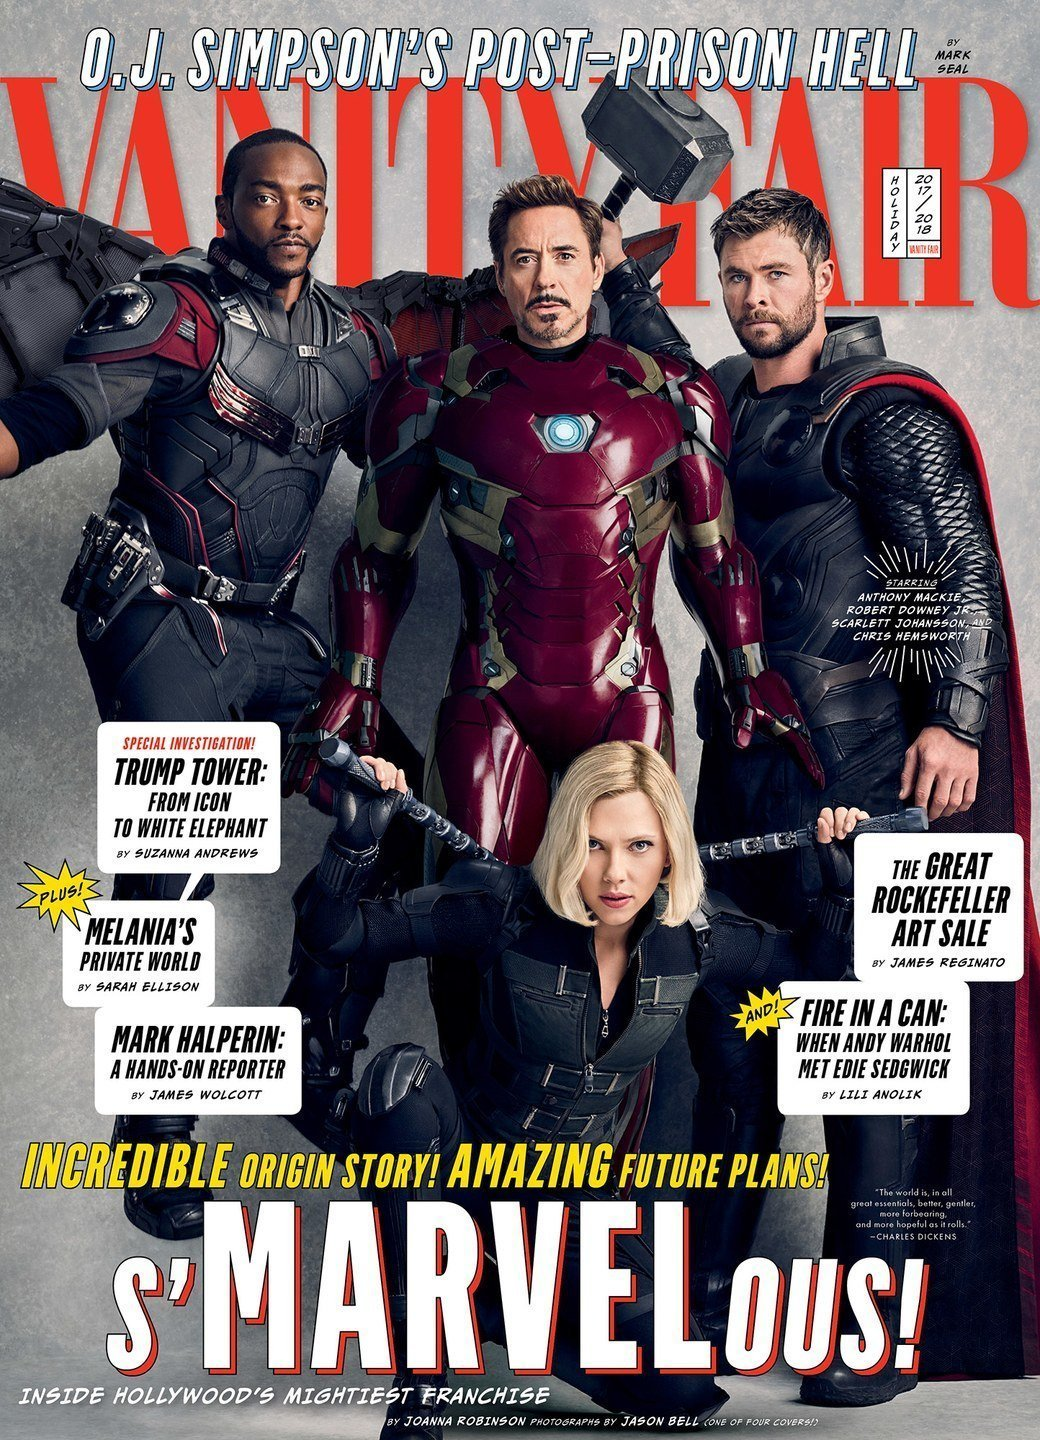 Couverture de Vanity Fair avec Falcon, Iron Man, Thor et Black Widow